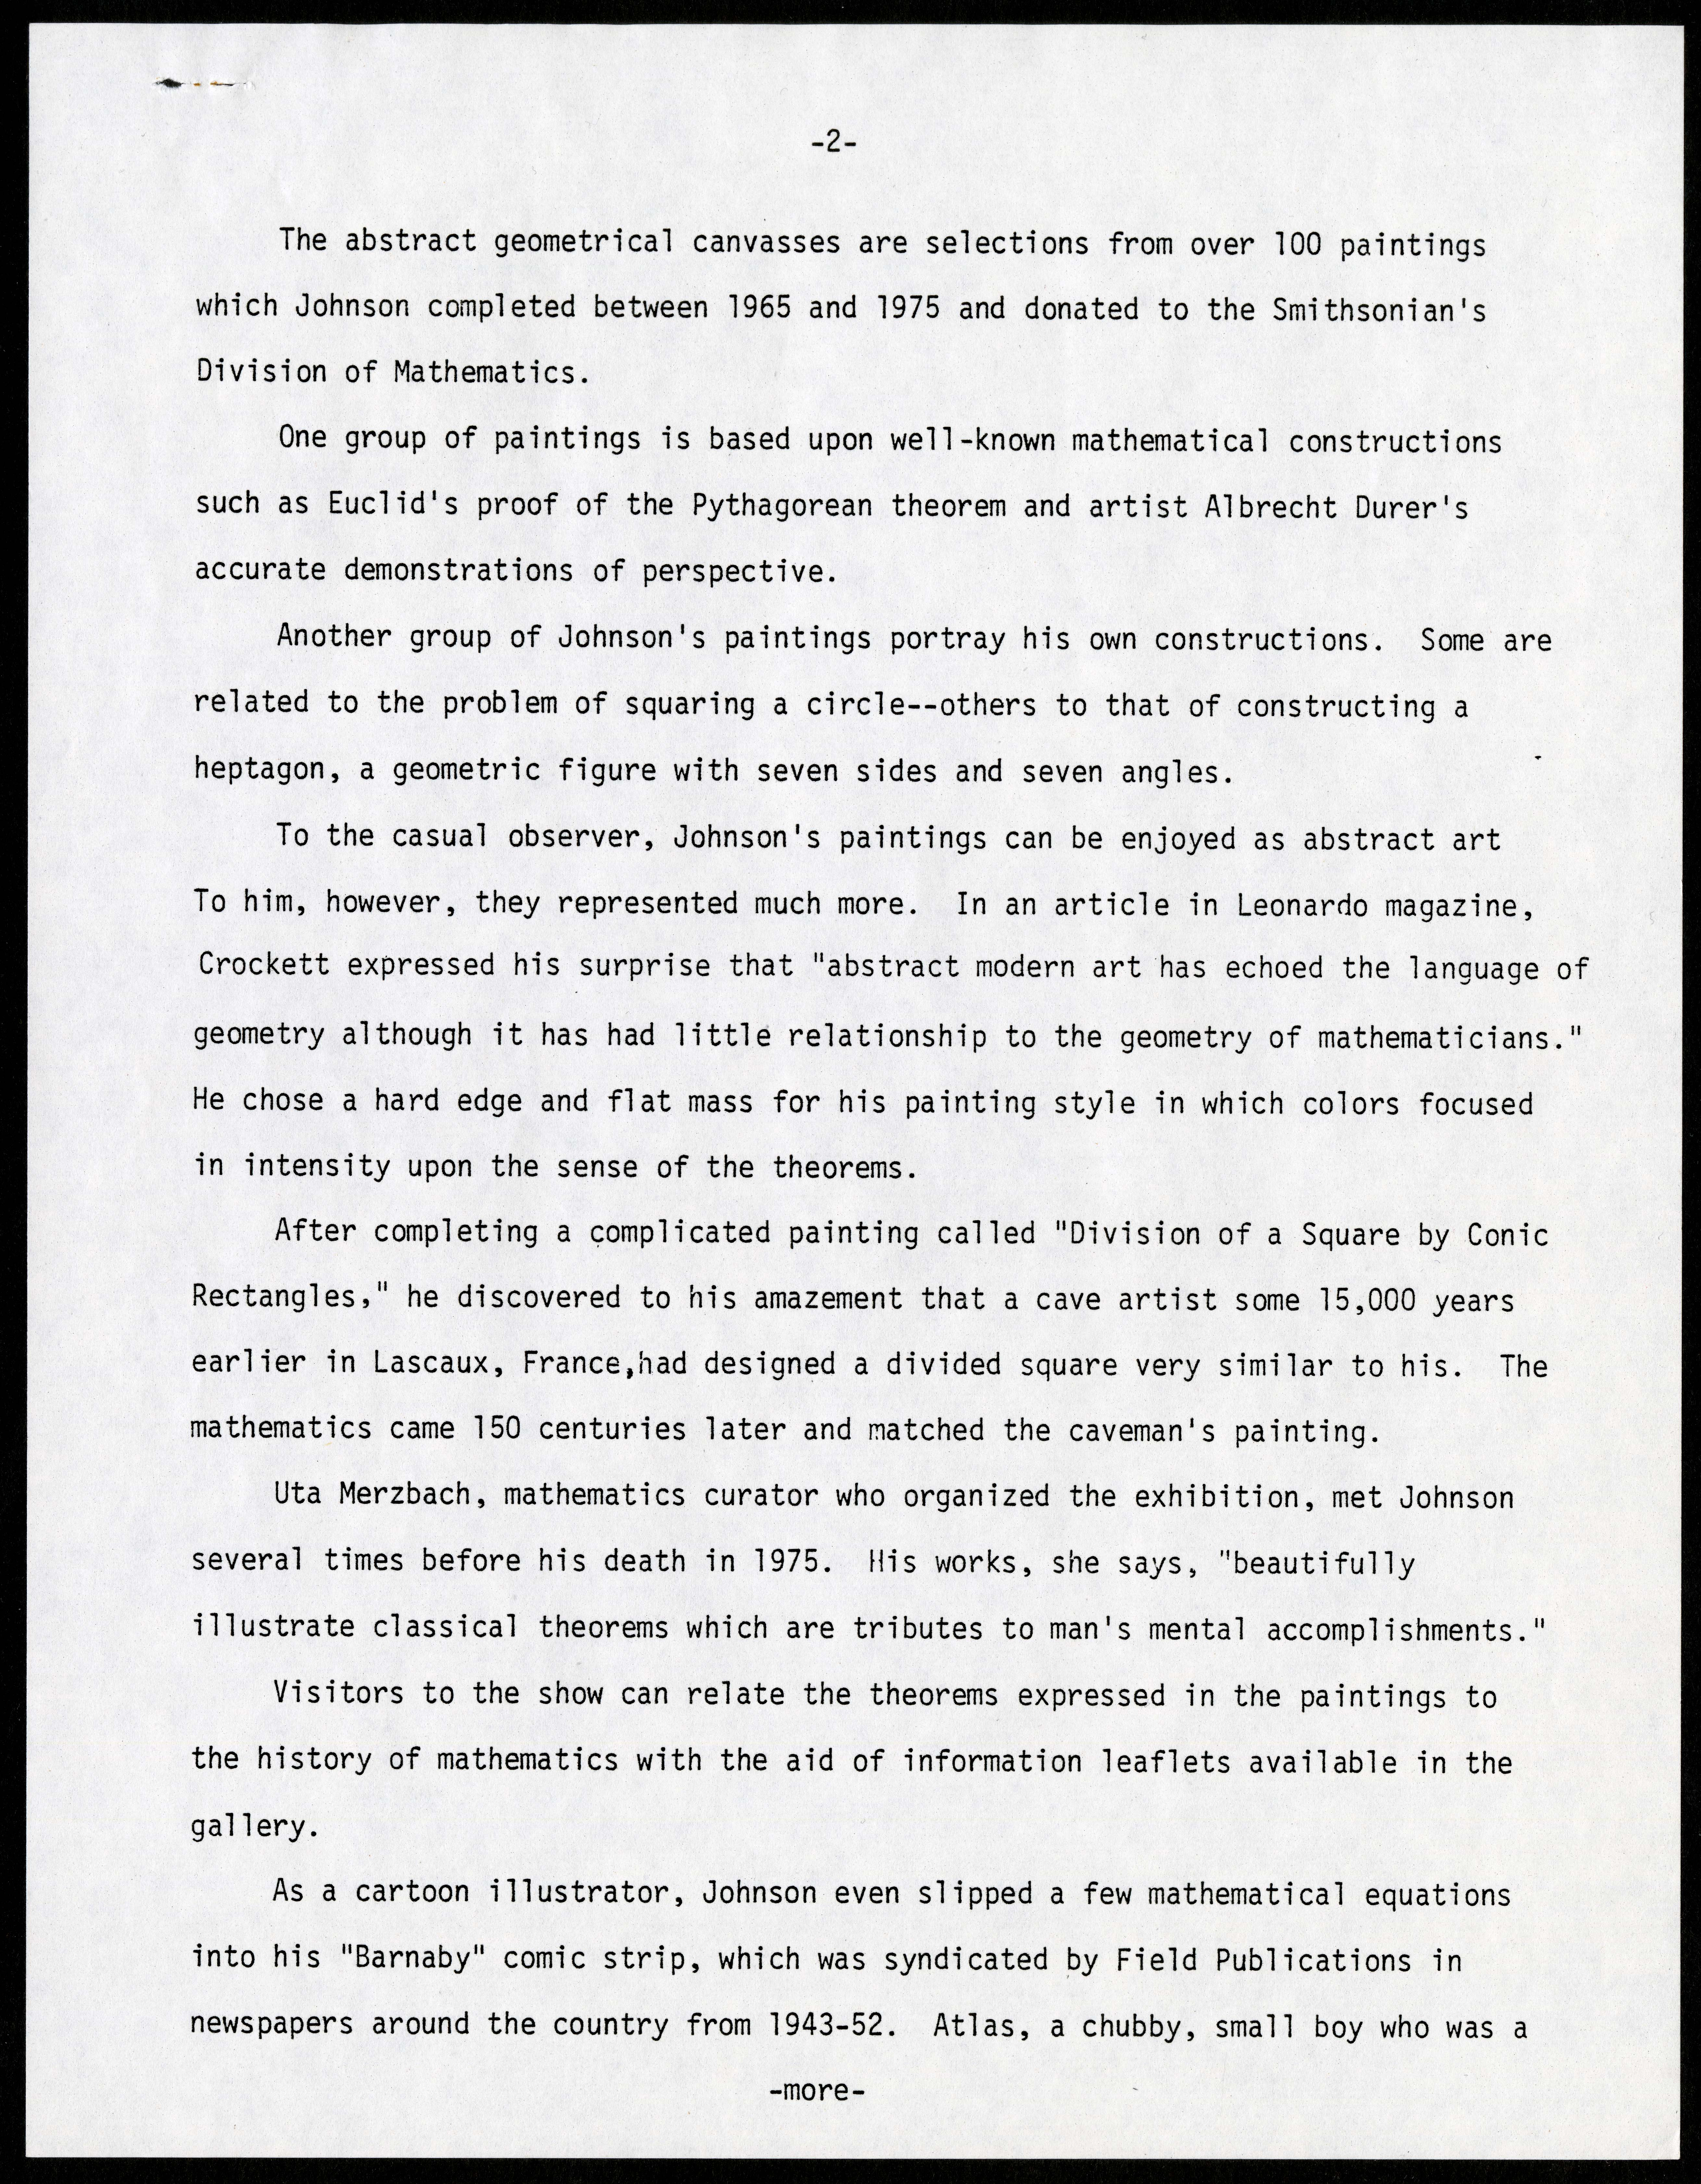 Scan of a type written document on white letter paper